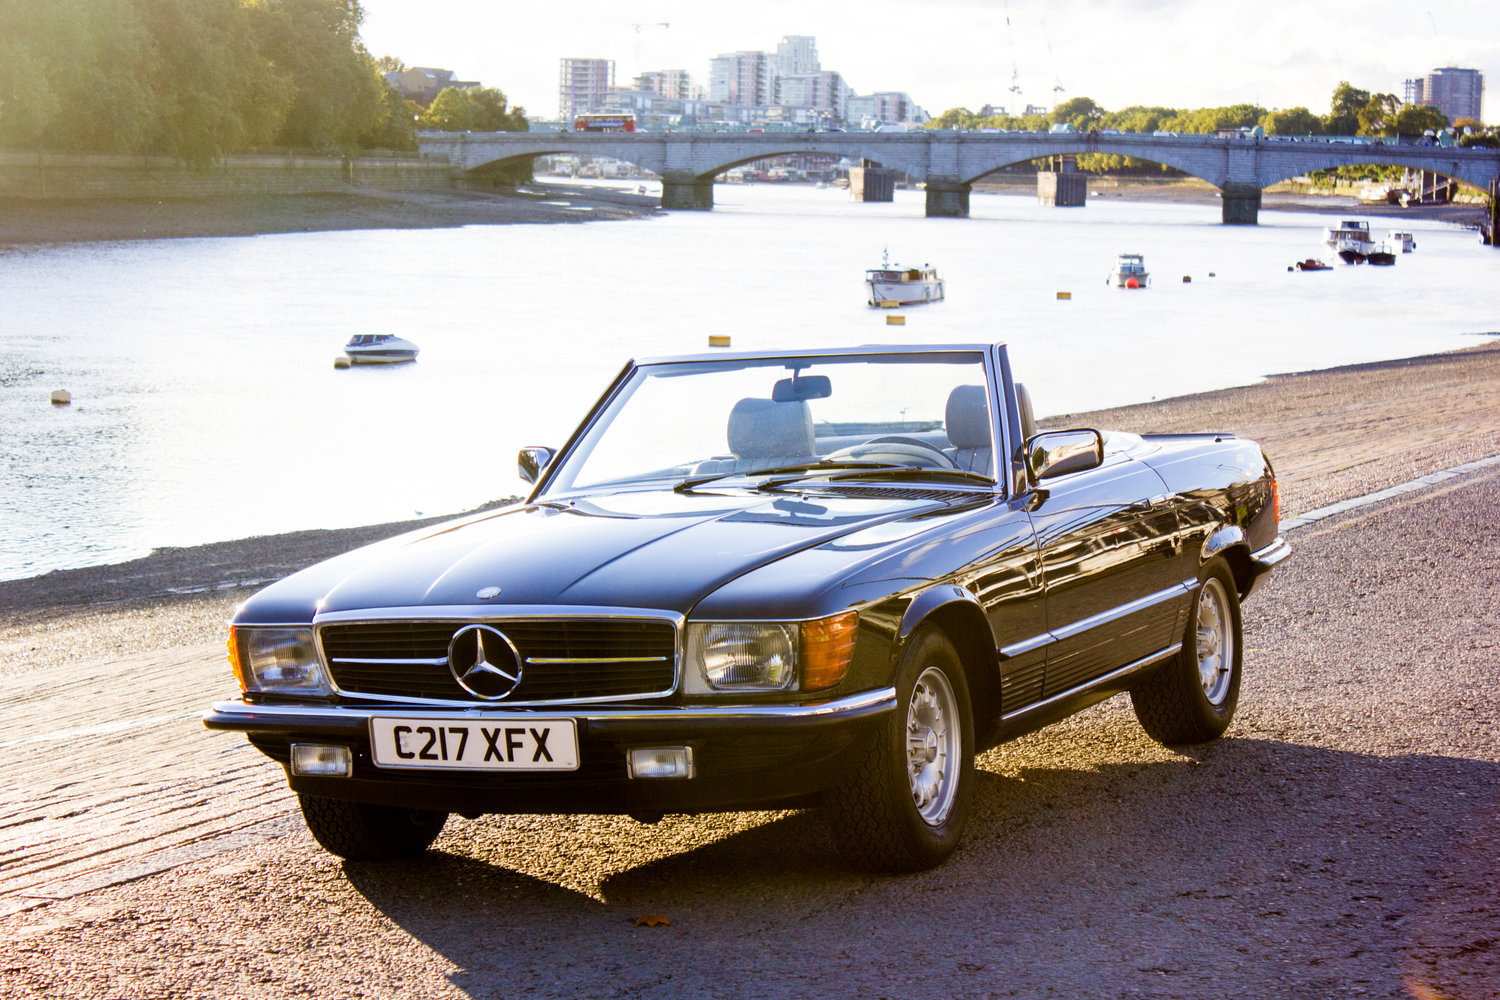 1985 Mercedes-Benz 500SL - LHD, AC, Heated Seats, 43k Miles For Sale (picture 1 of 6)